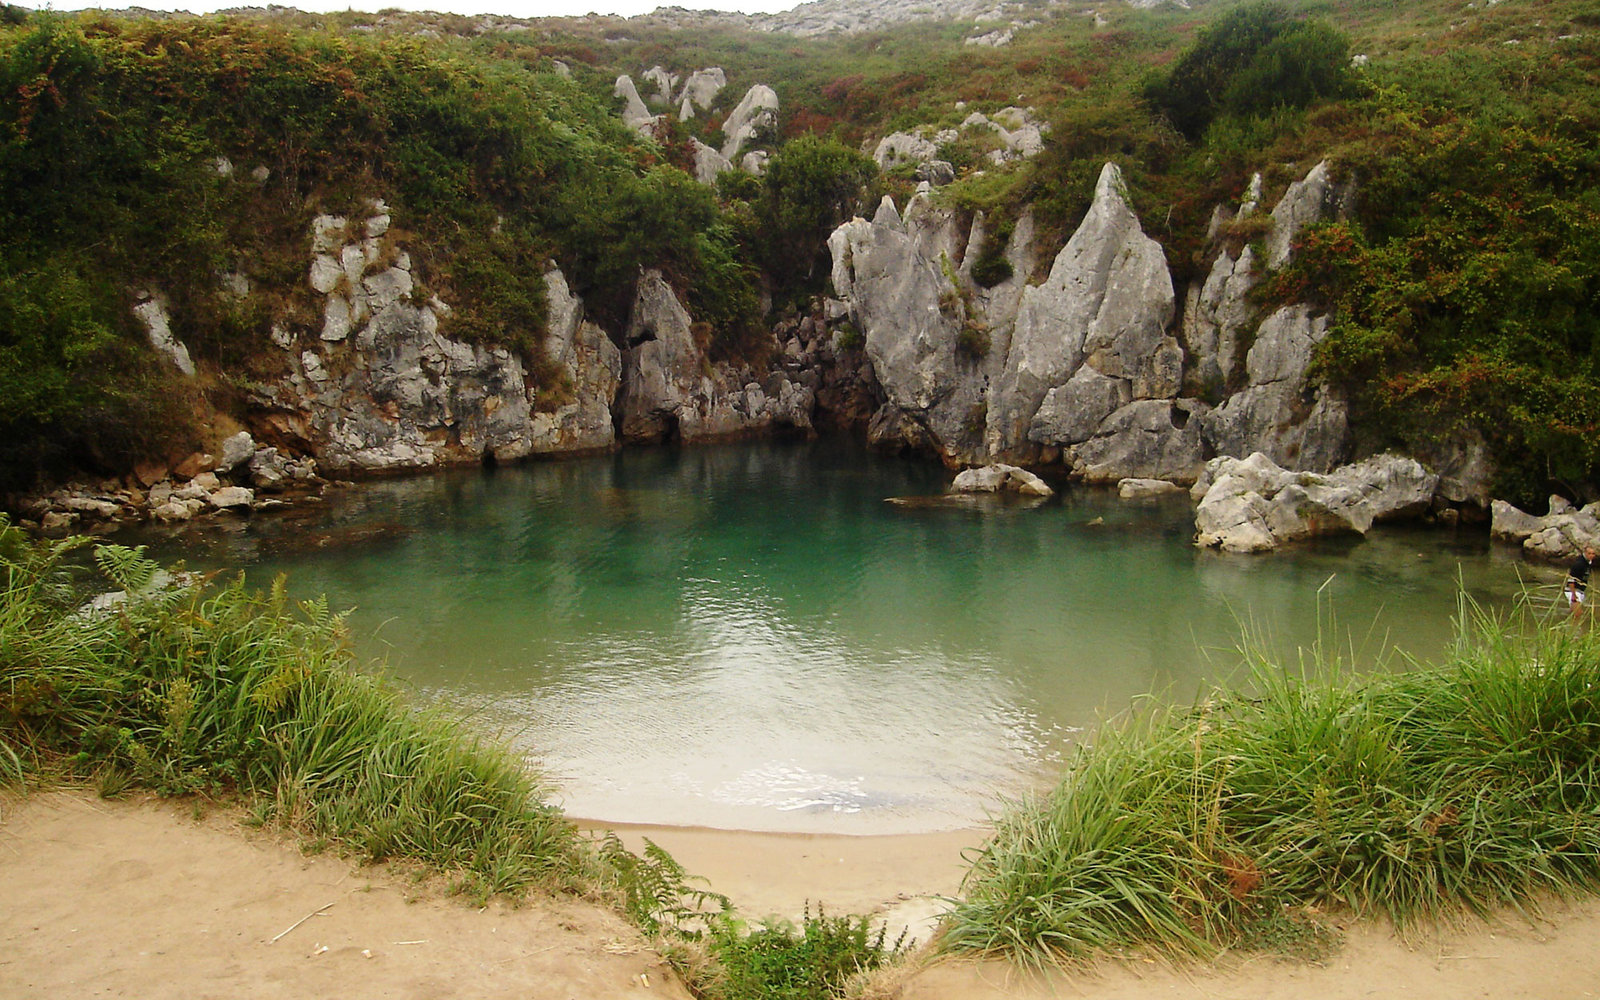 Gulpiyuri Beach, Llanes, Spain